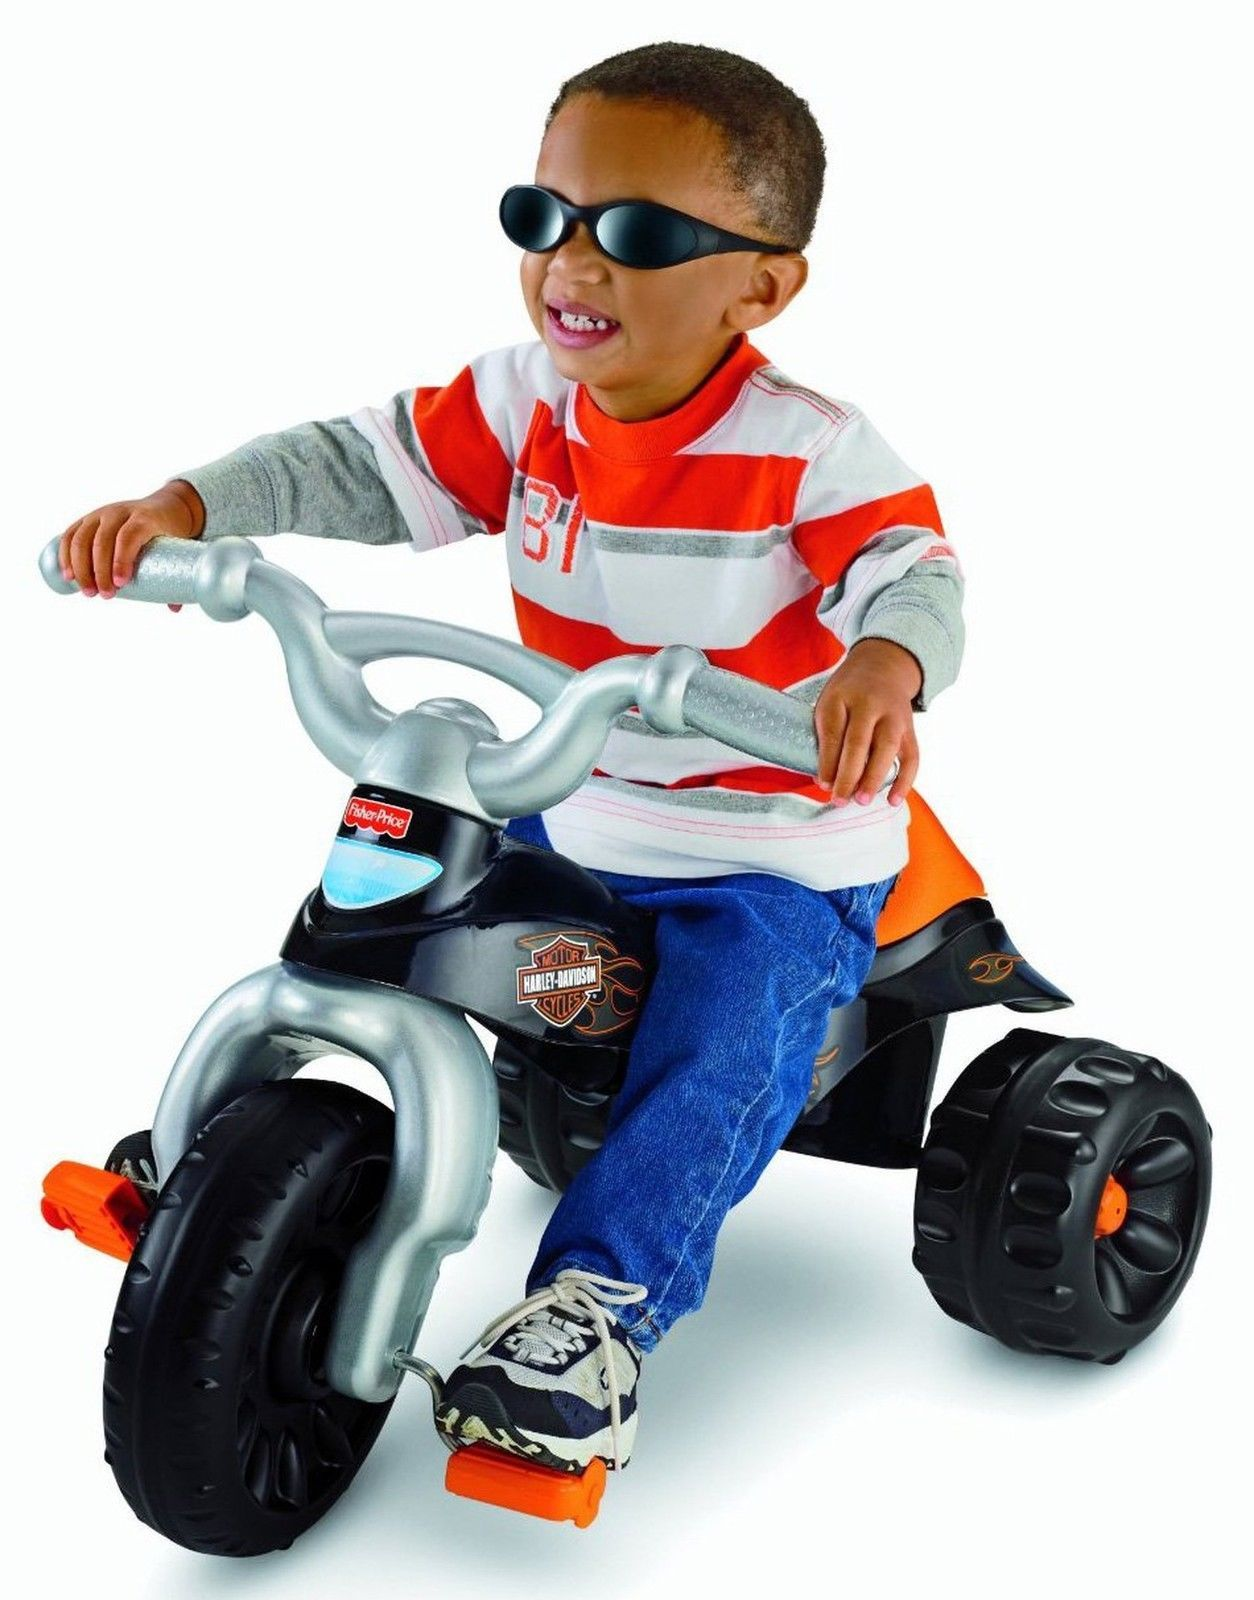 Fisher Price Harley Davidson Tough Trike Motorcycle Kids Tricycle